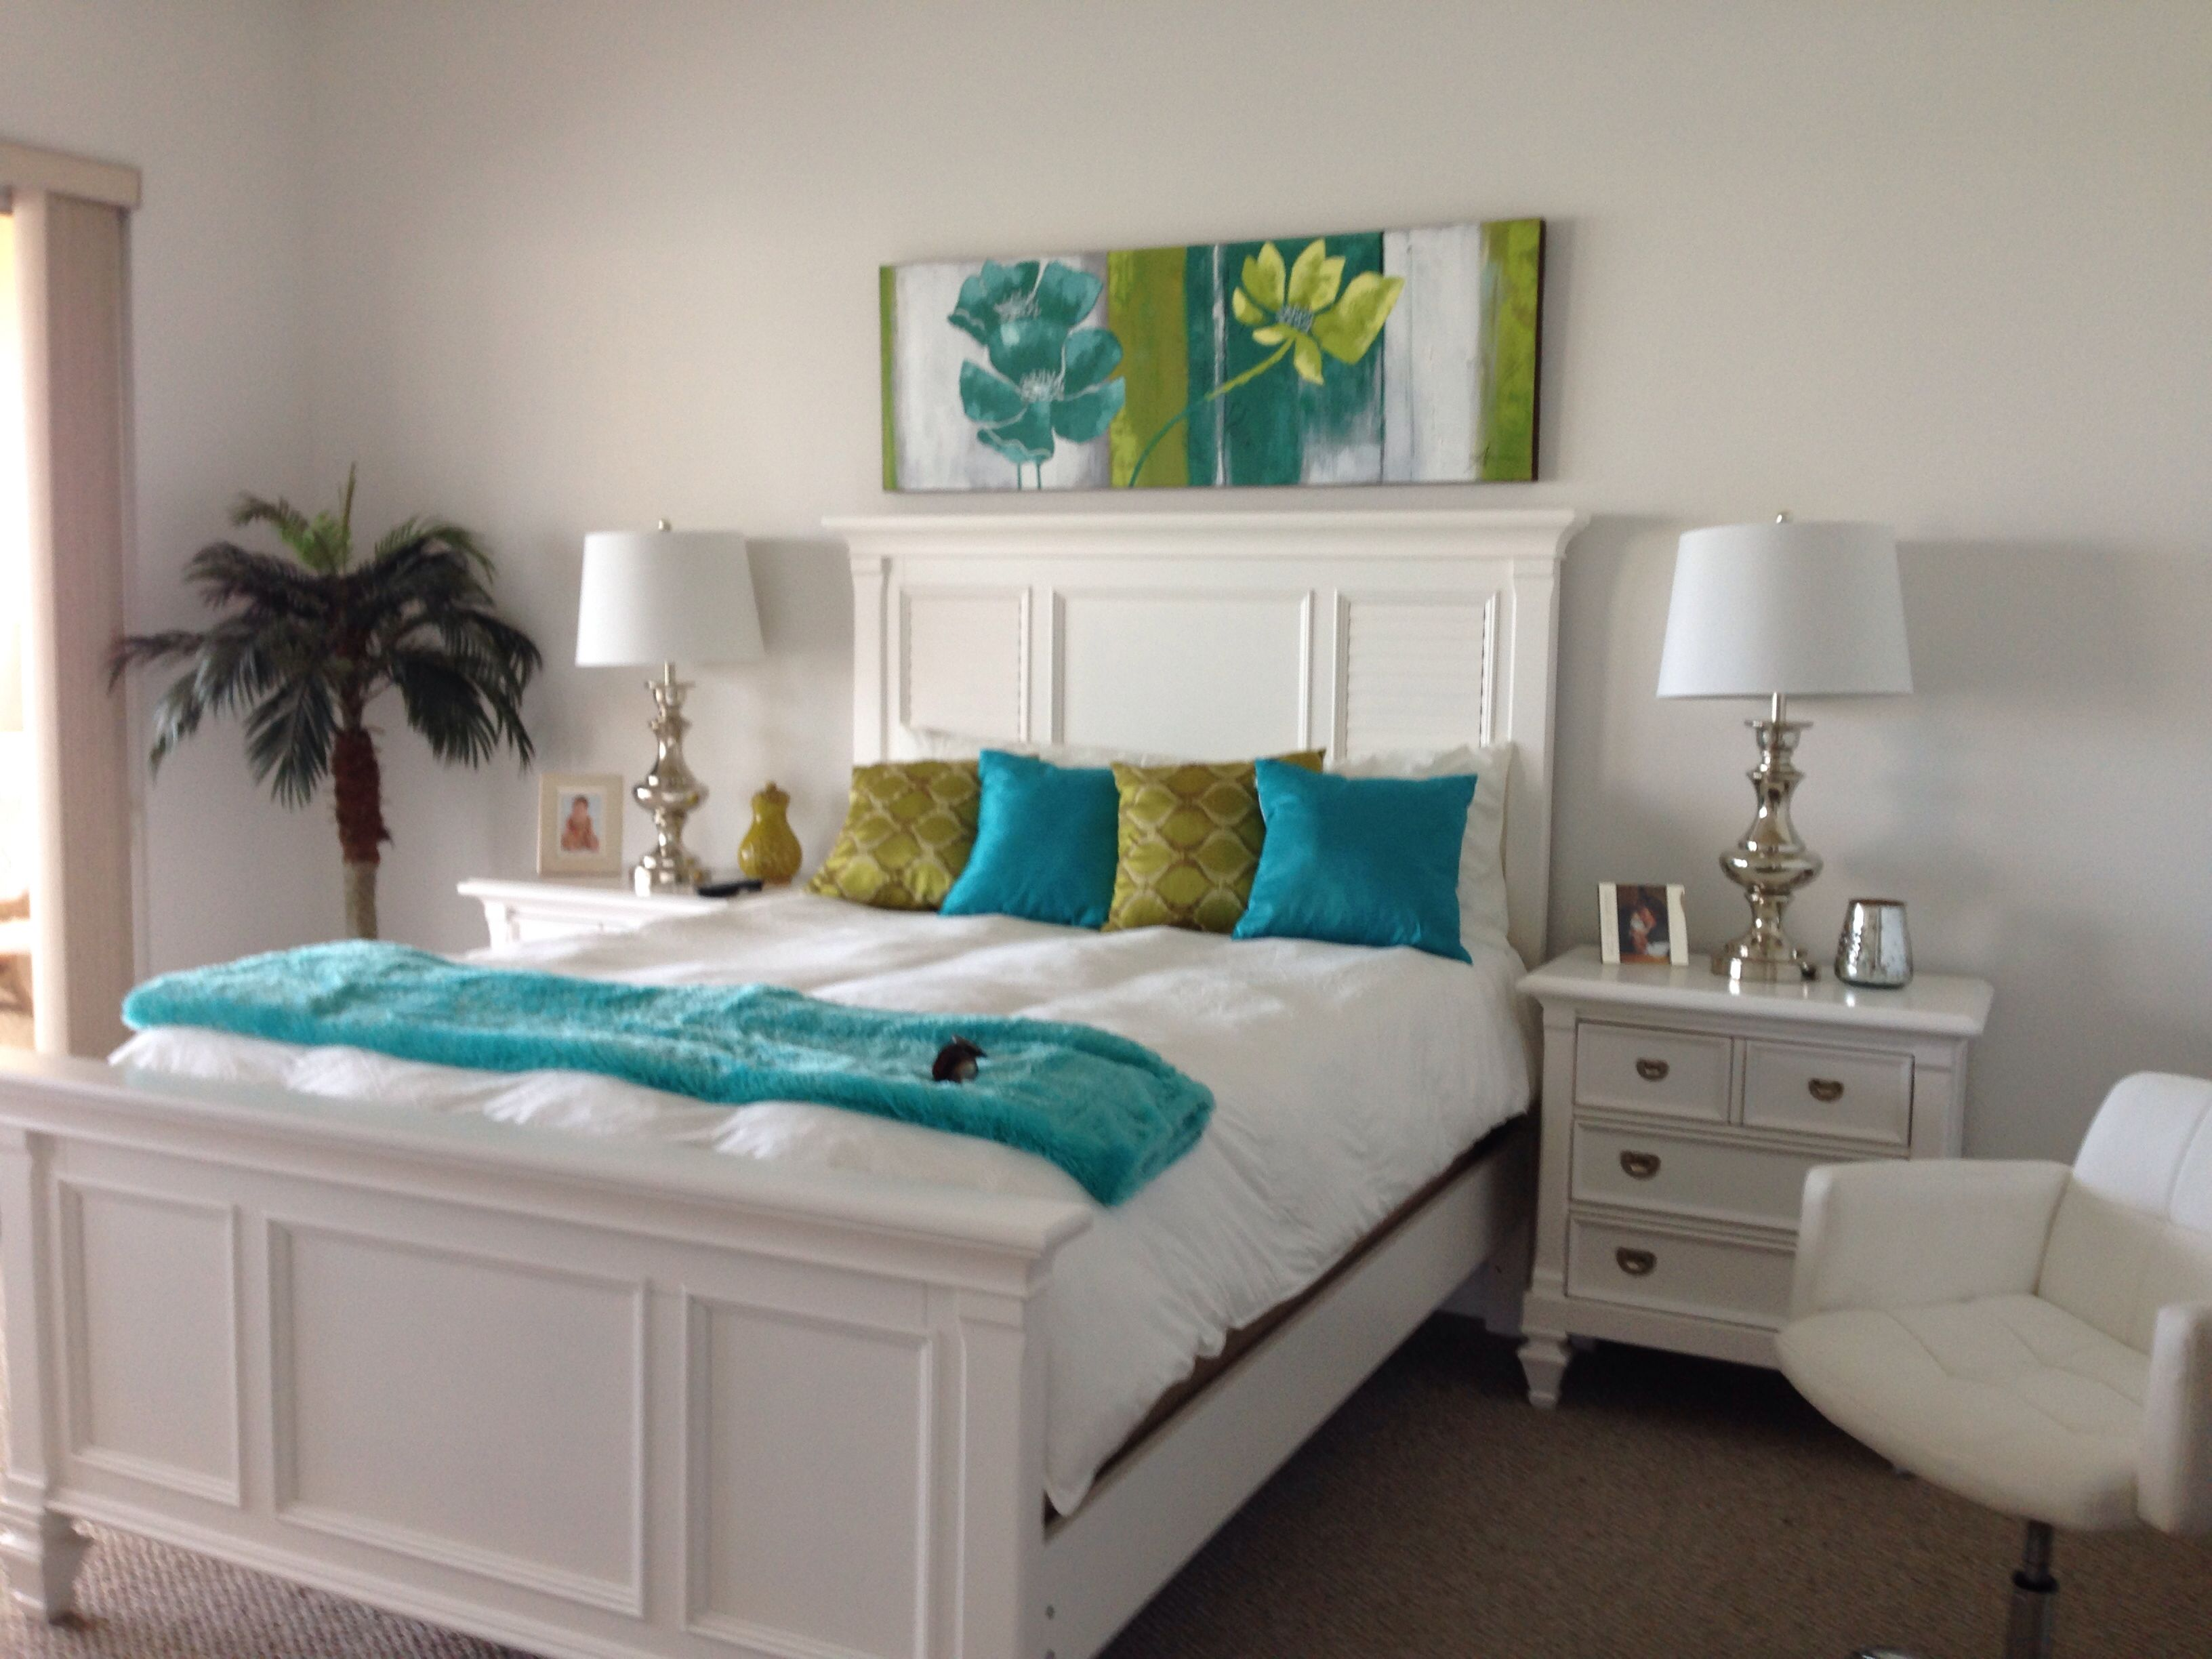 Bedroom Decorating On A Budget